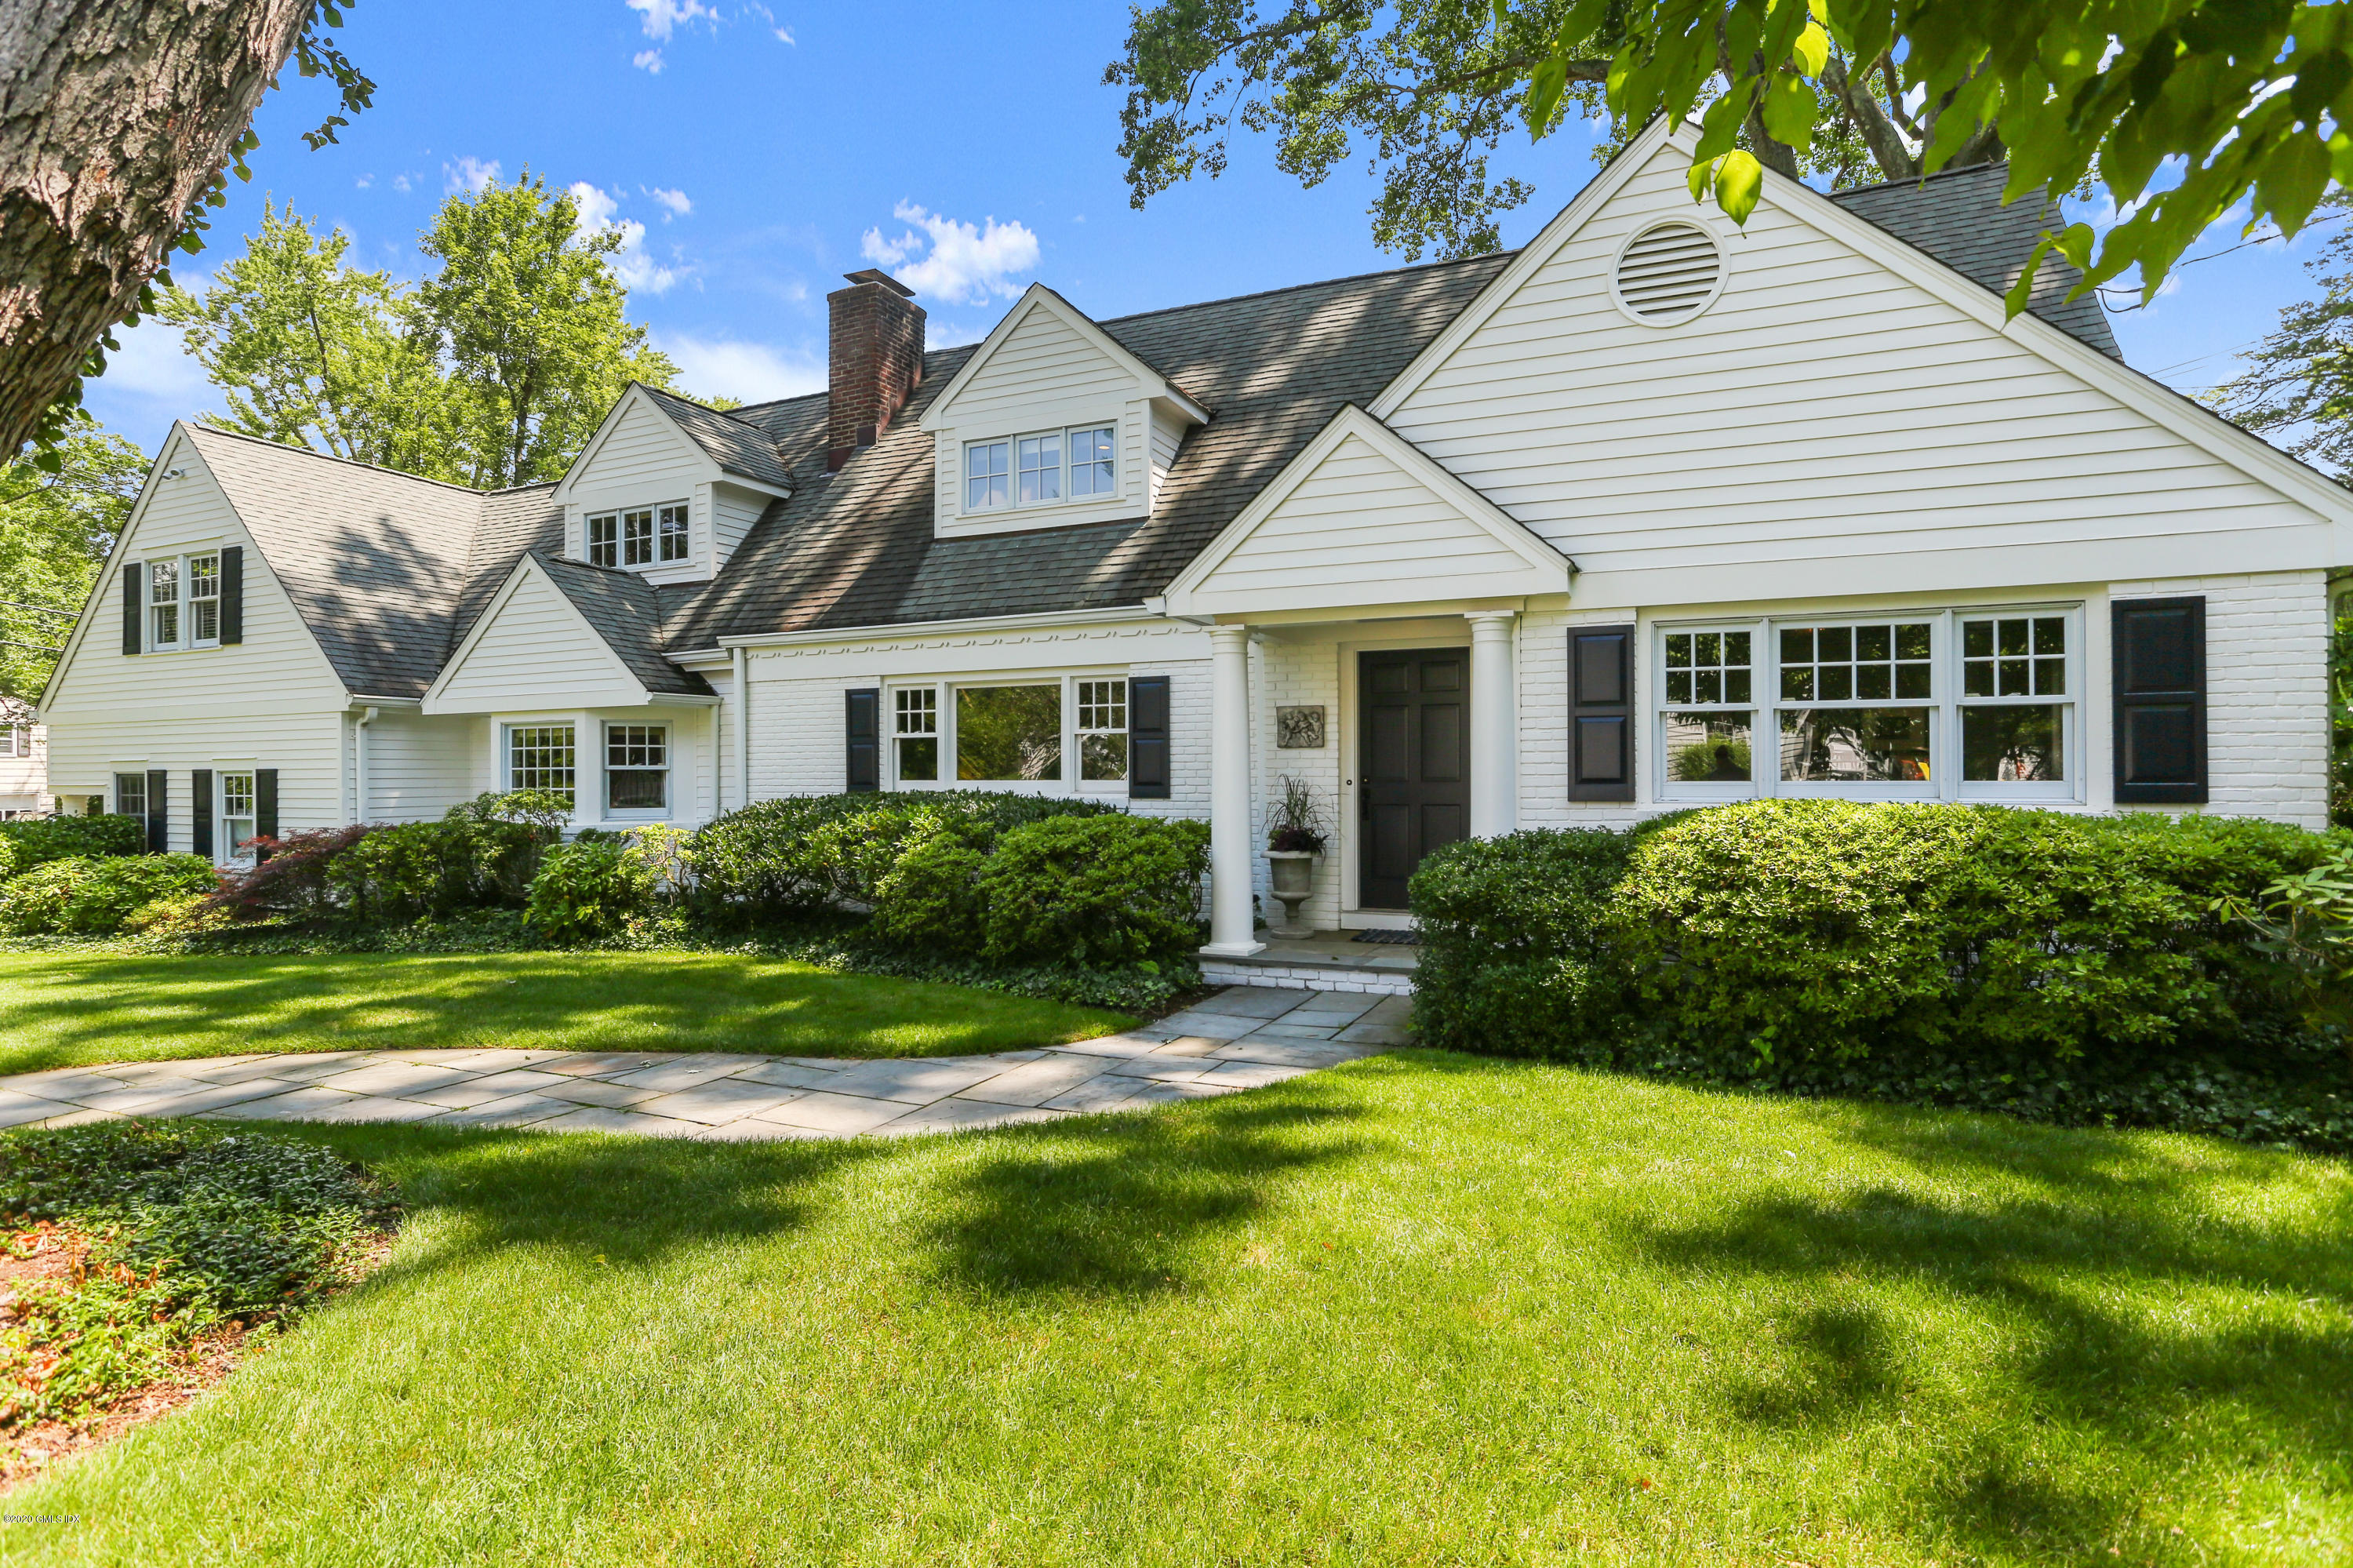 29 Spring Street, Riverside, Connecticut 06878, 4 Bedrooms Bedrooms, ,3 BathroomsBathrooms,Single family,For sale,Spring,110504